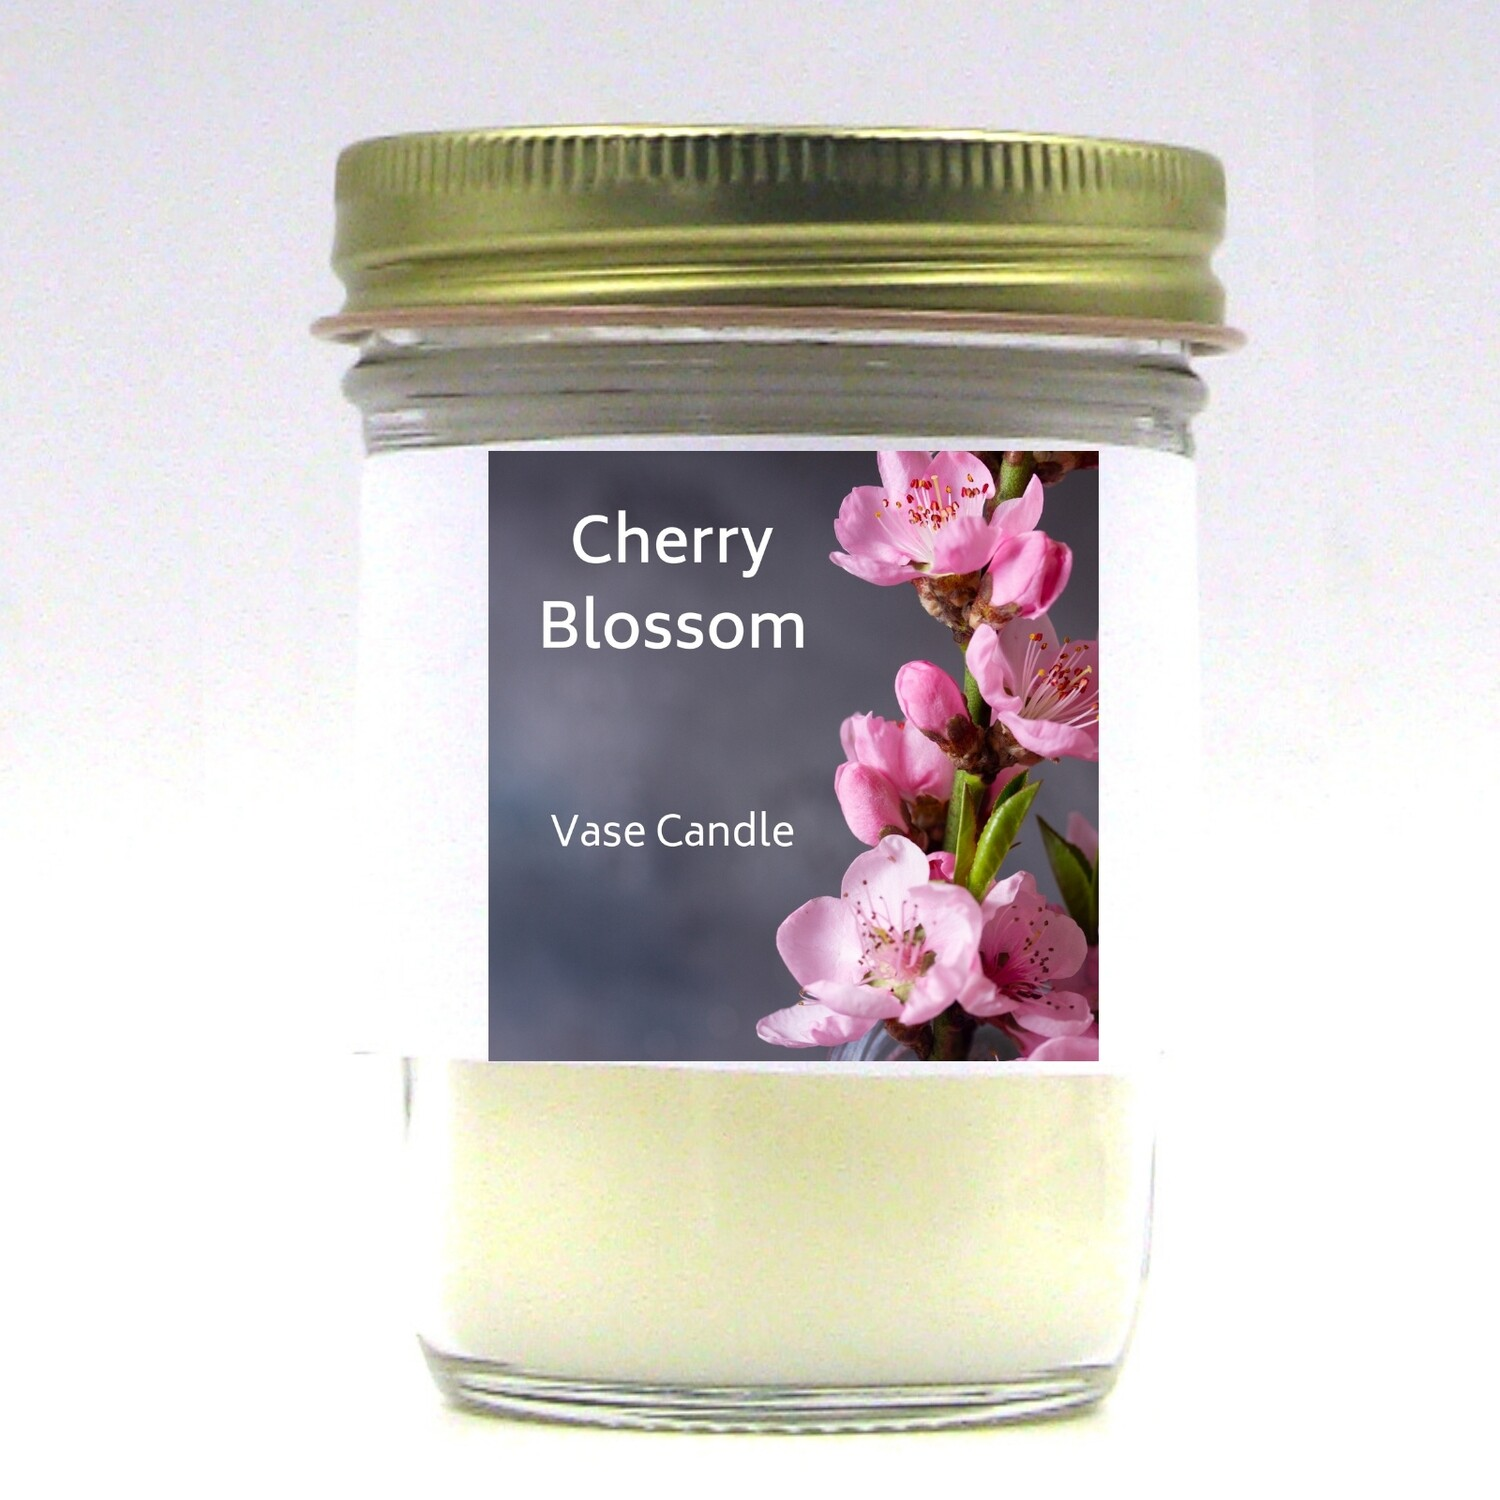 Cherry Blossom Vase Candle Jar